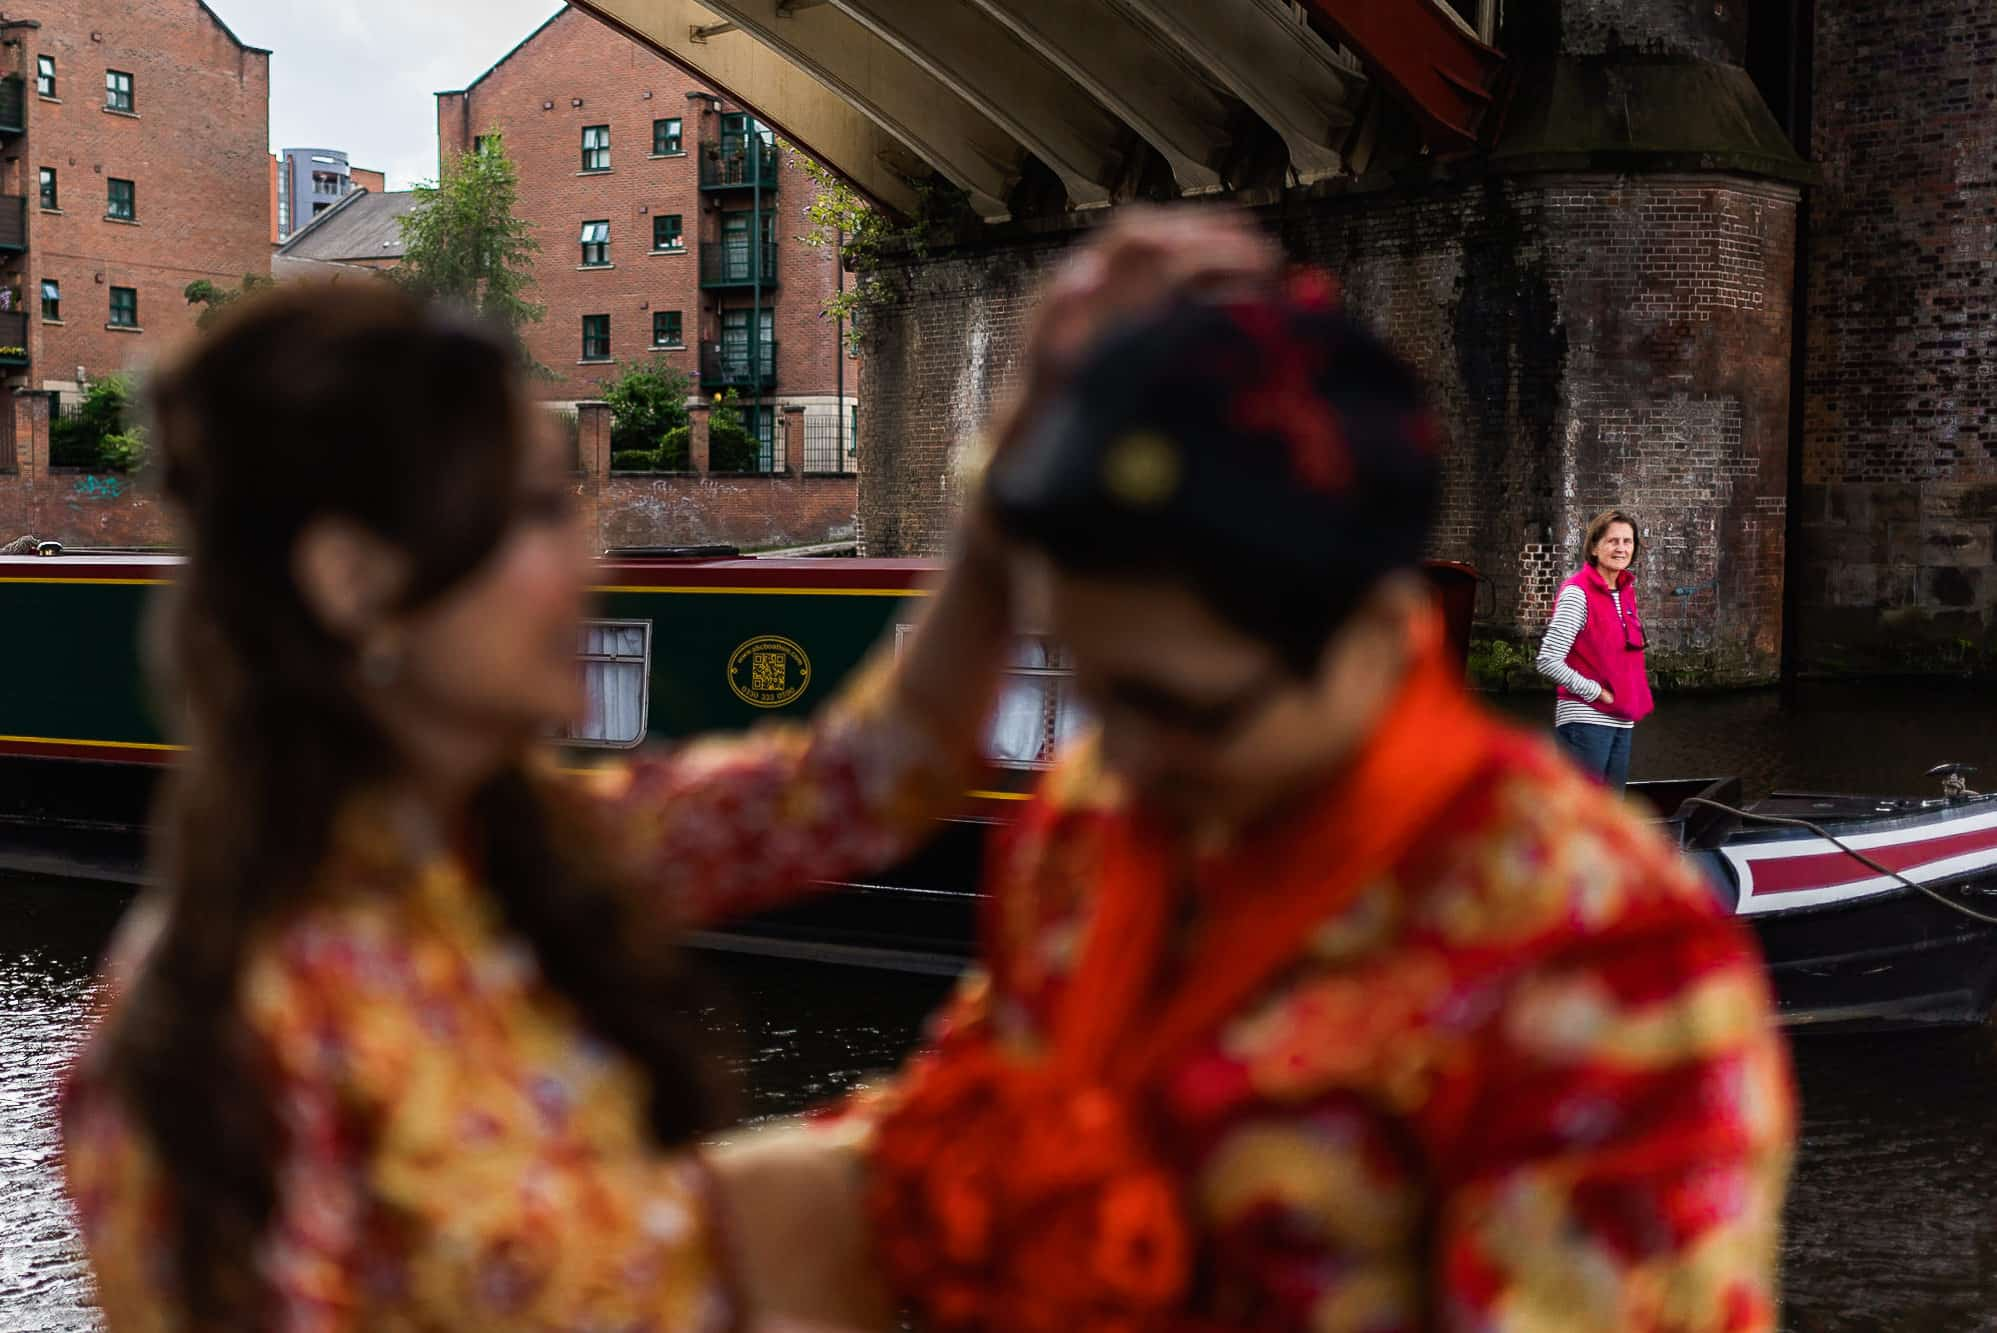 Canal boat going past bride and groom